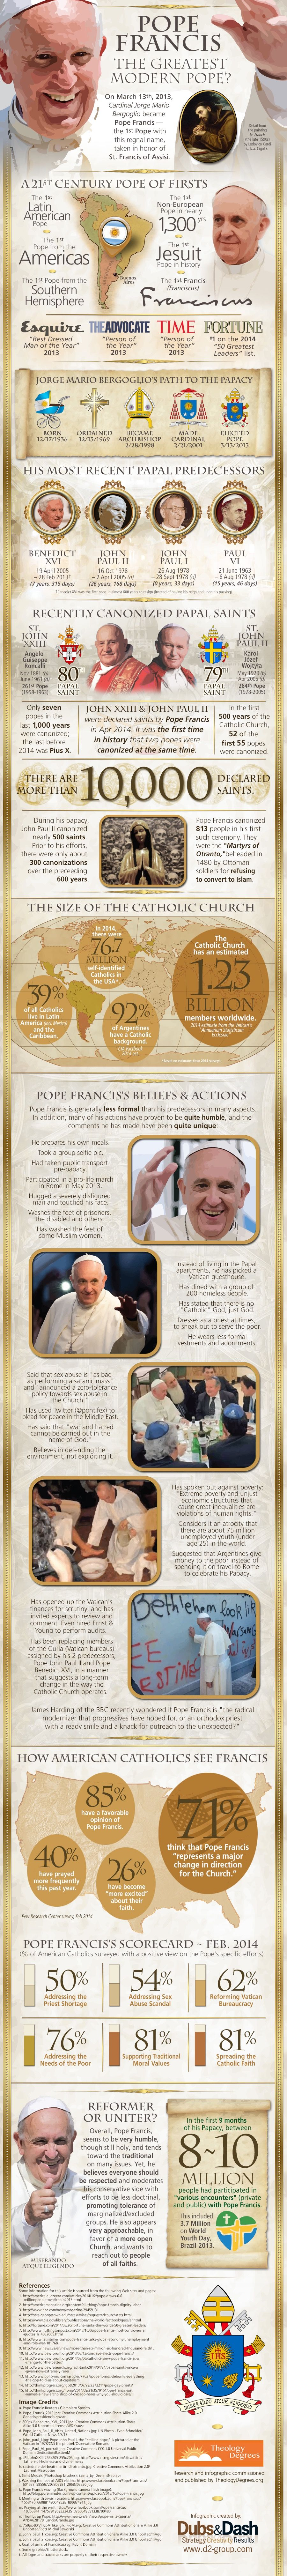 Pope Francis: The Greatest Modern Pope?